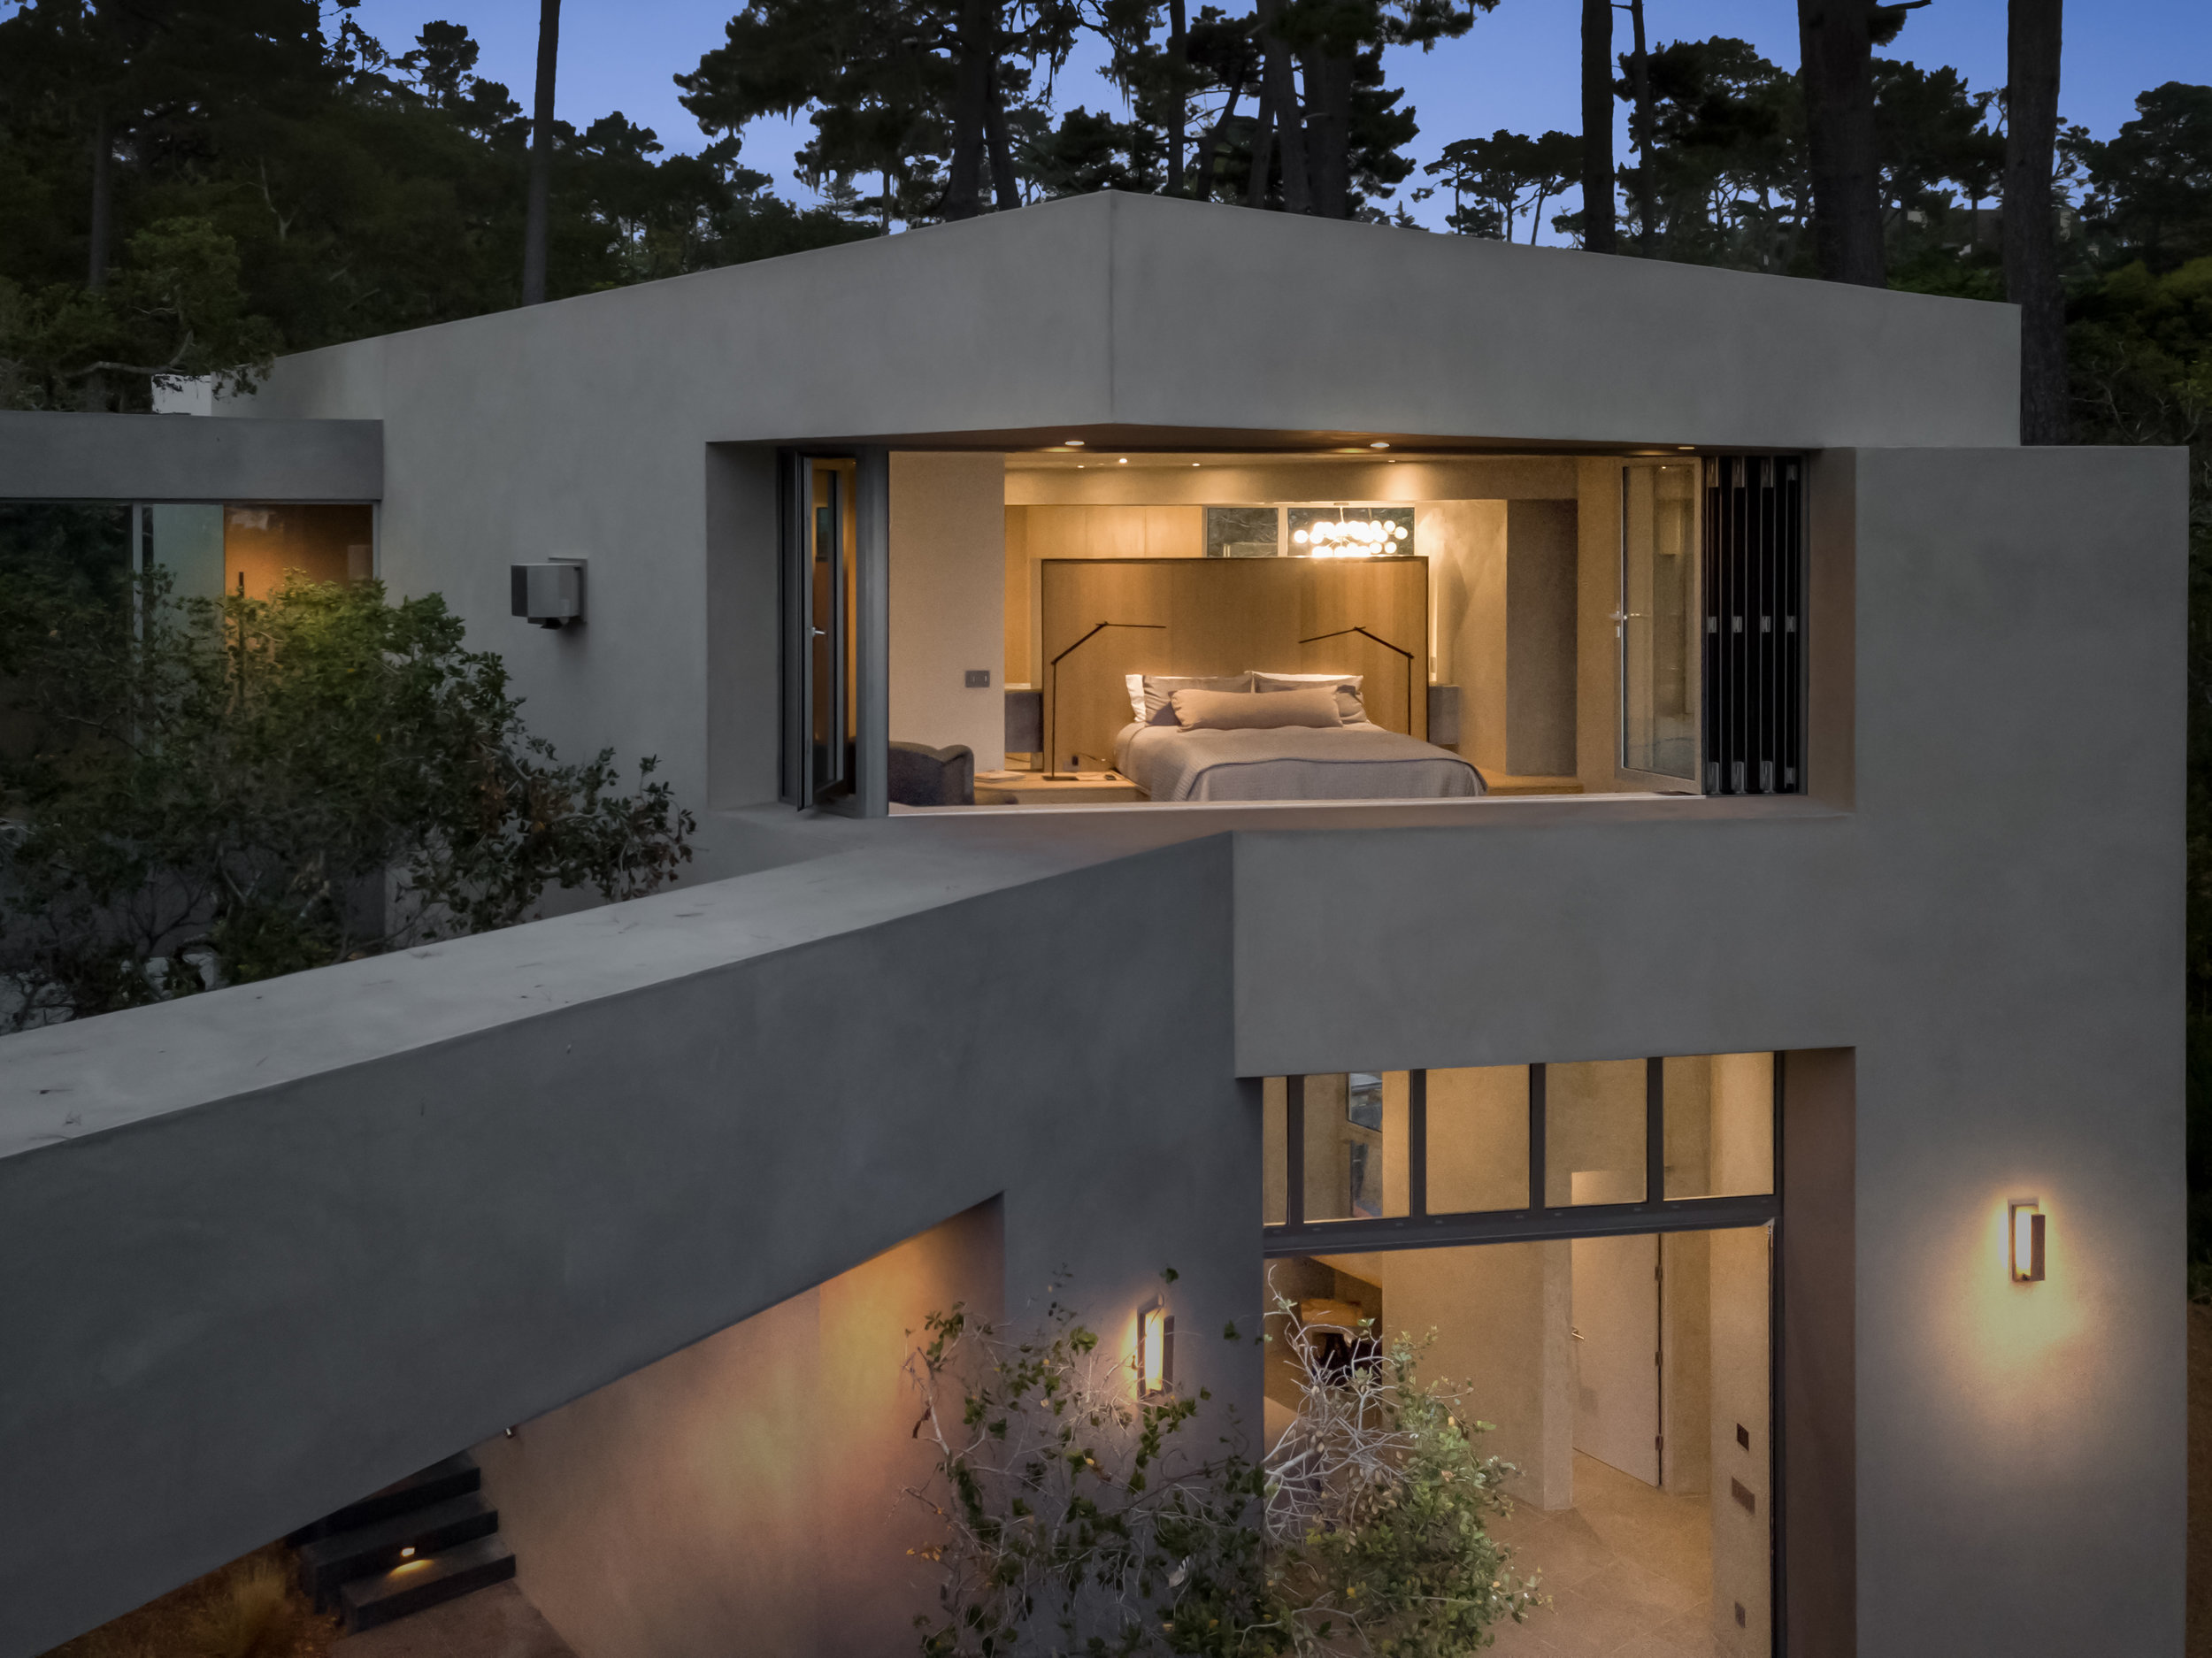 Los Angeles Real Estate Photography  Dream Home Images